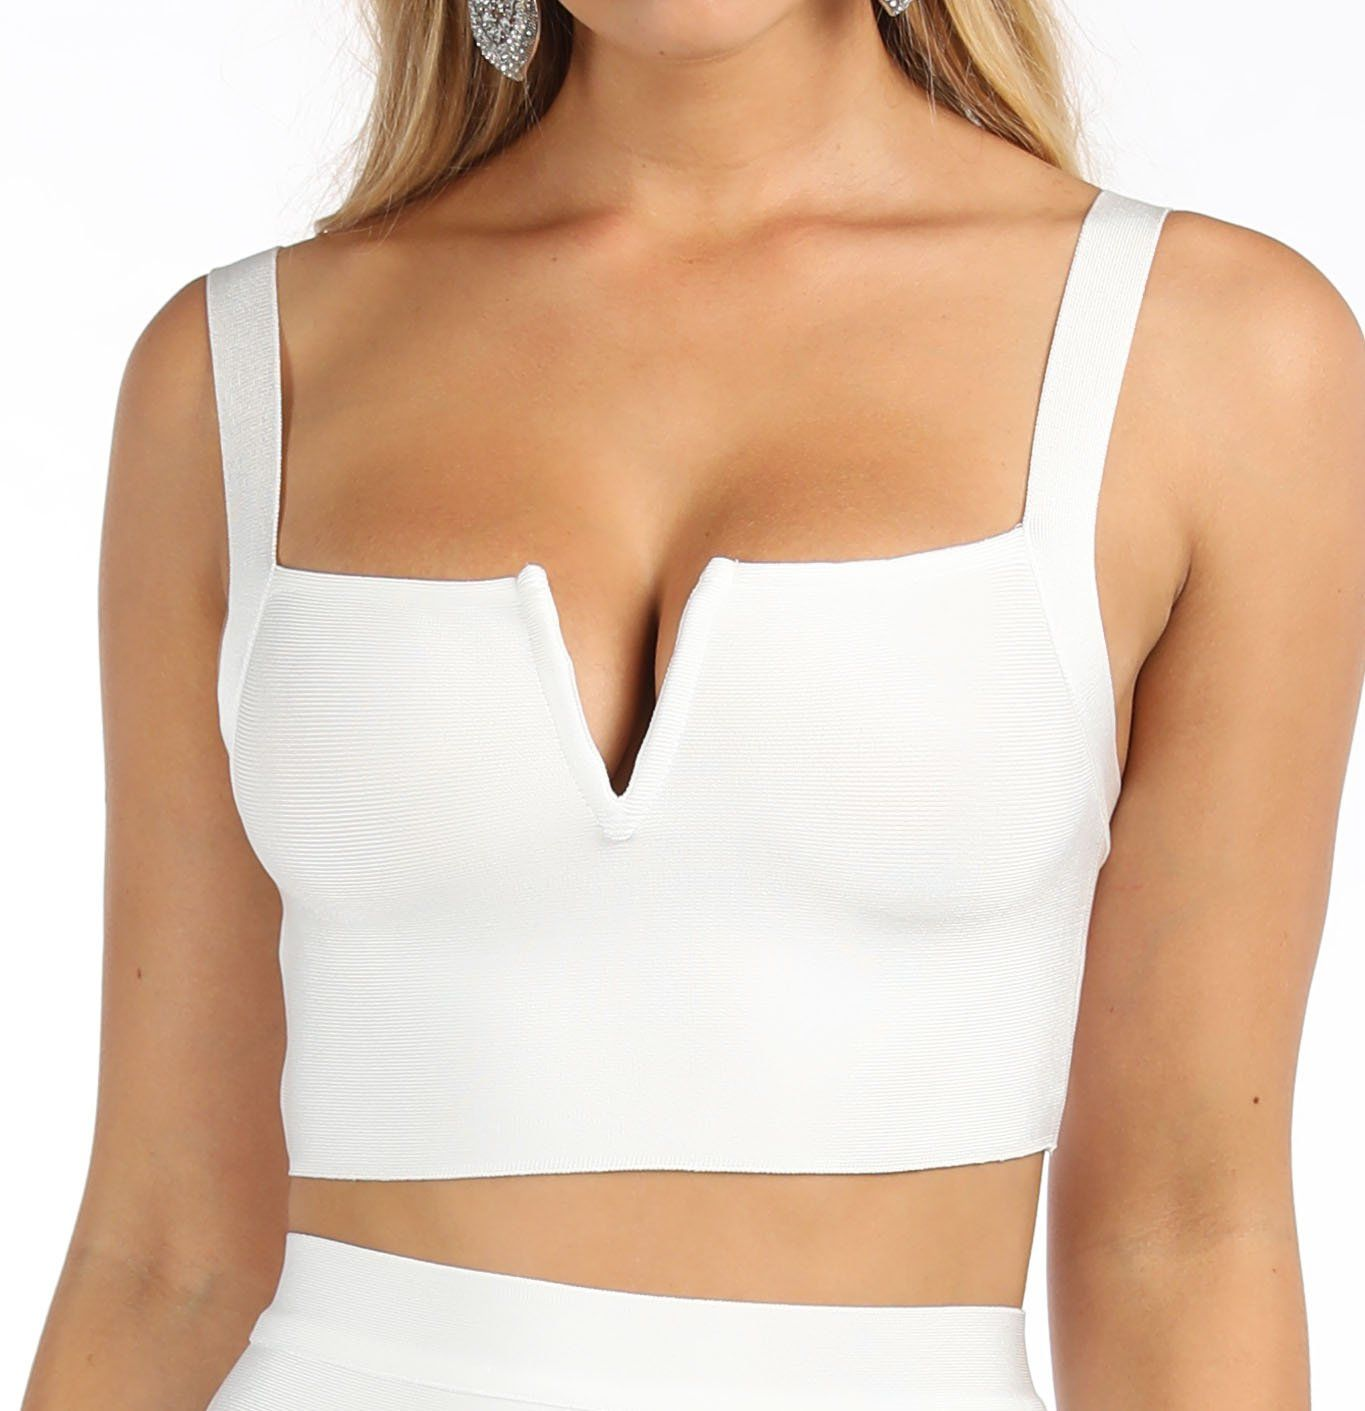 Angeline Bandage Crop Top - White